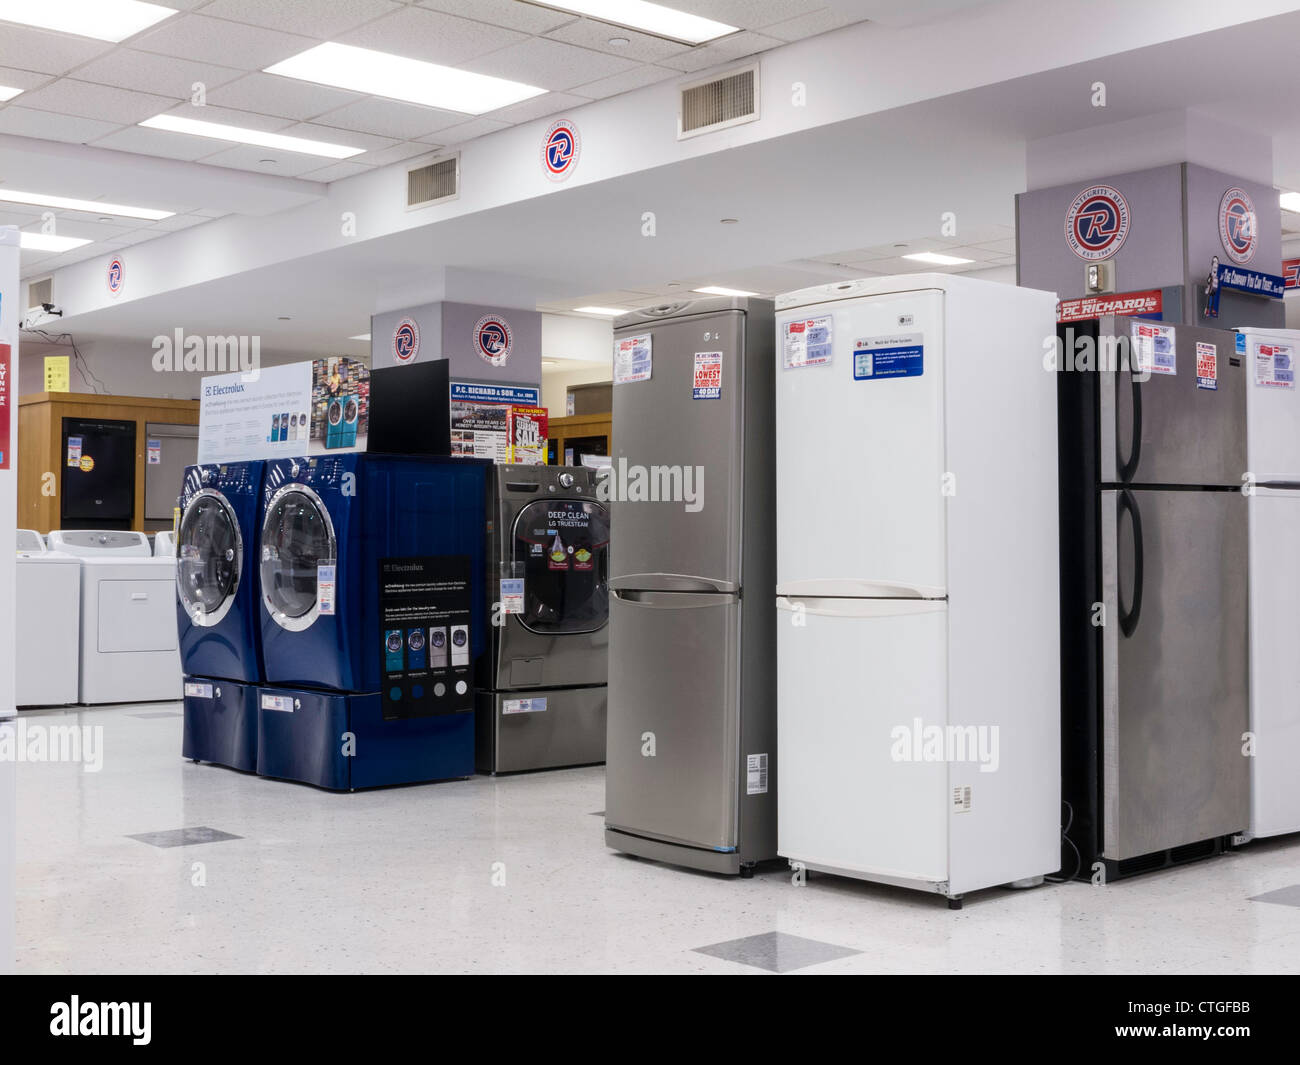 Household Appliances For Sale in Appliance Store Stock Photo ...